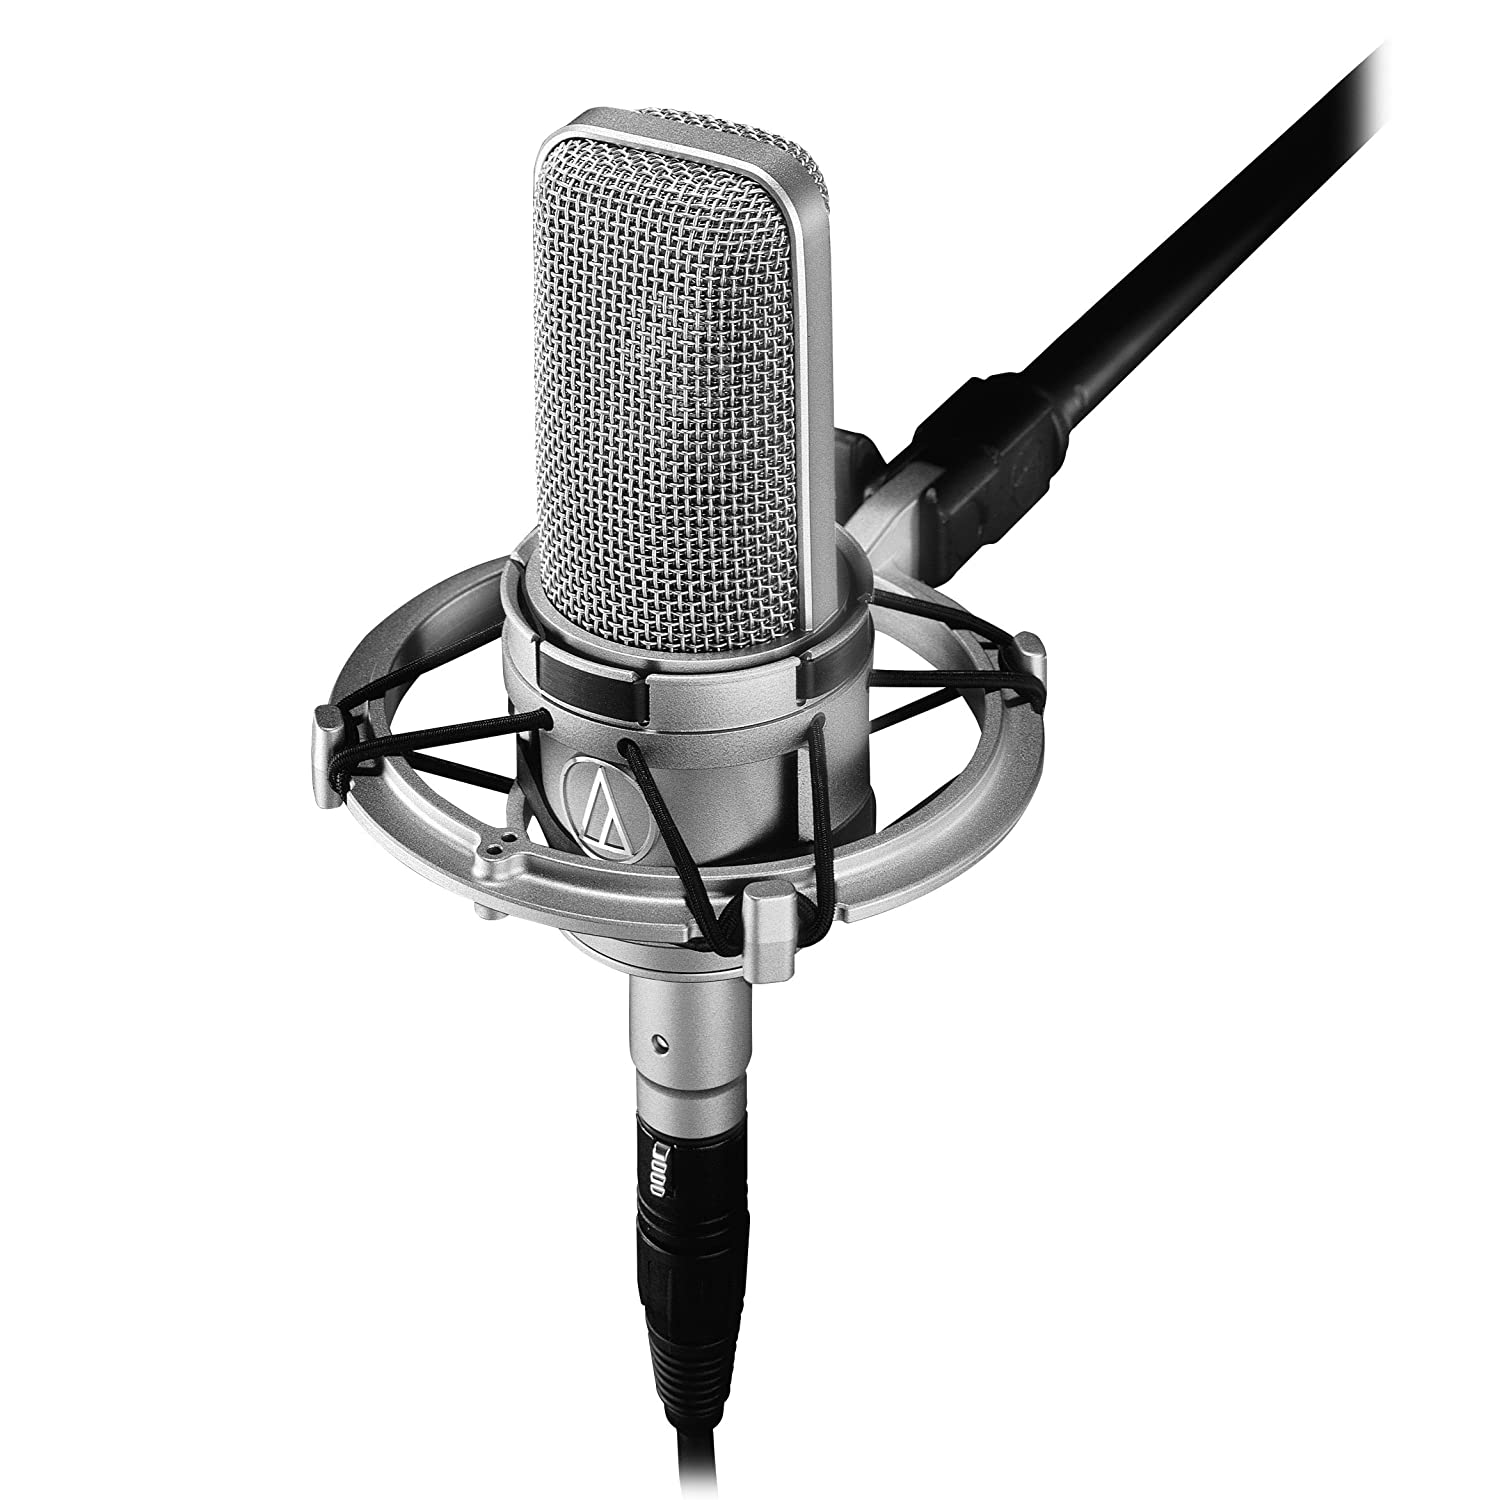 Audio Technica At4047 Sv Cardioid Condenser Microphone Details About New U87 Type Circuit Case Shock Musical Instruments